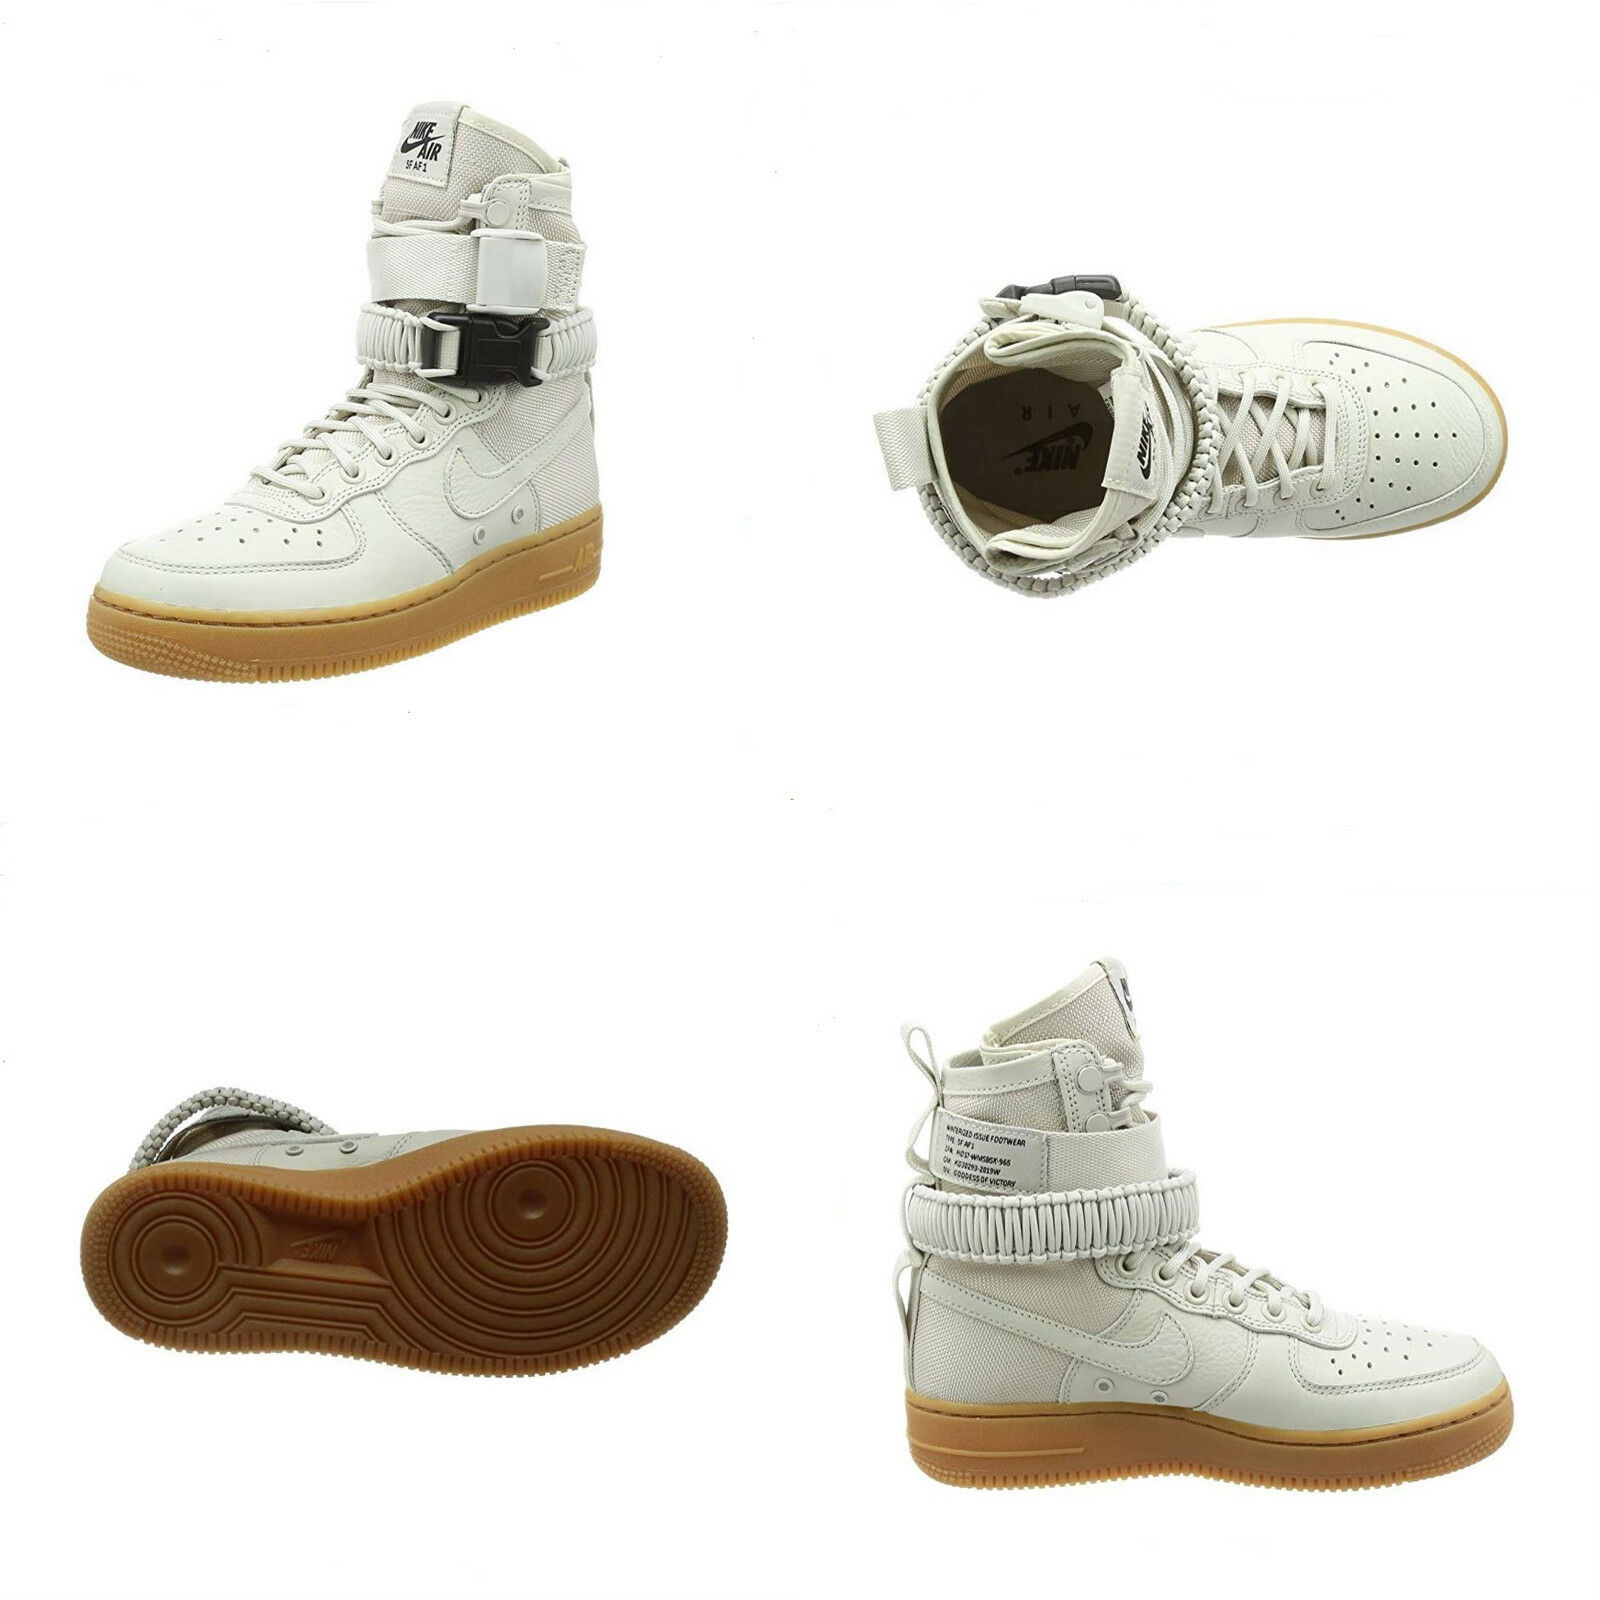 NIKE SF AF1 857872 - 004 ,LIGHT BONE,Women's CASUAl shoes.NEW WITH BOX